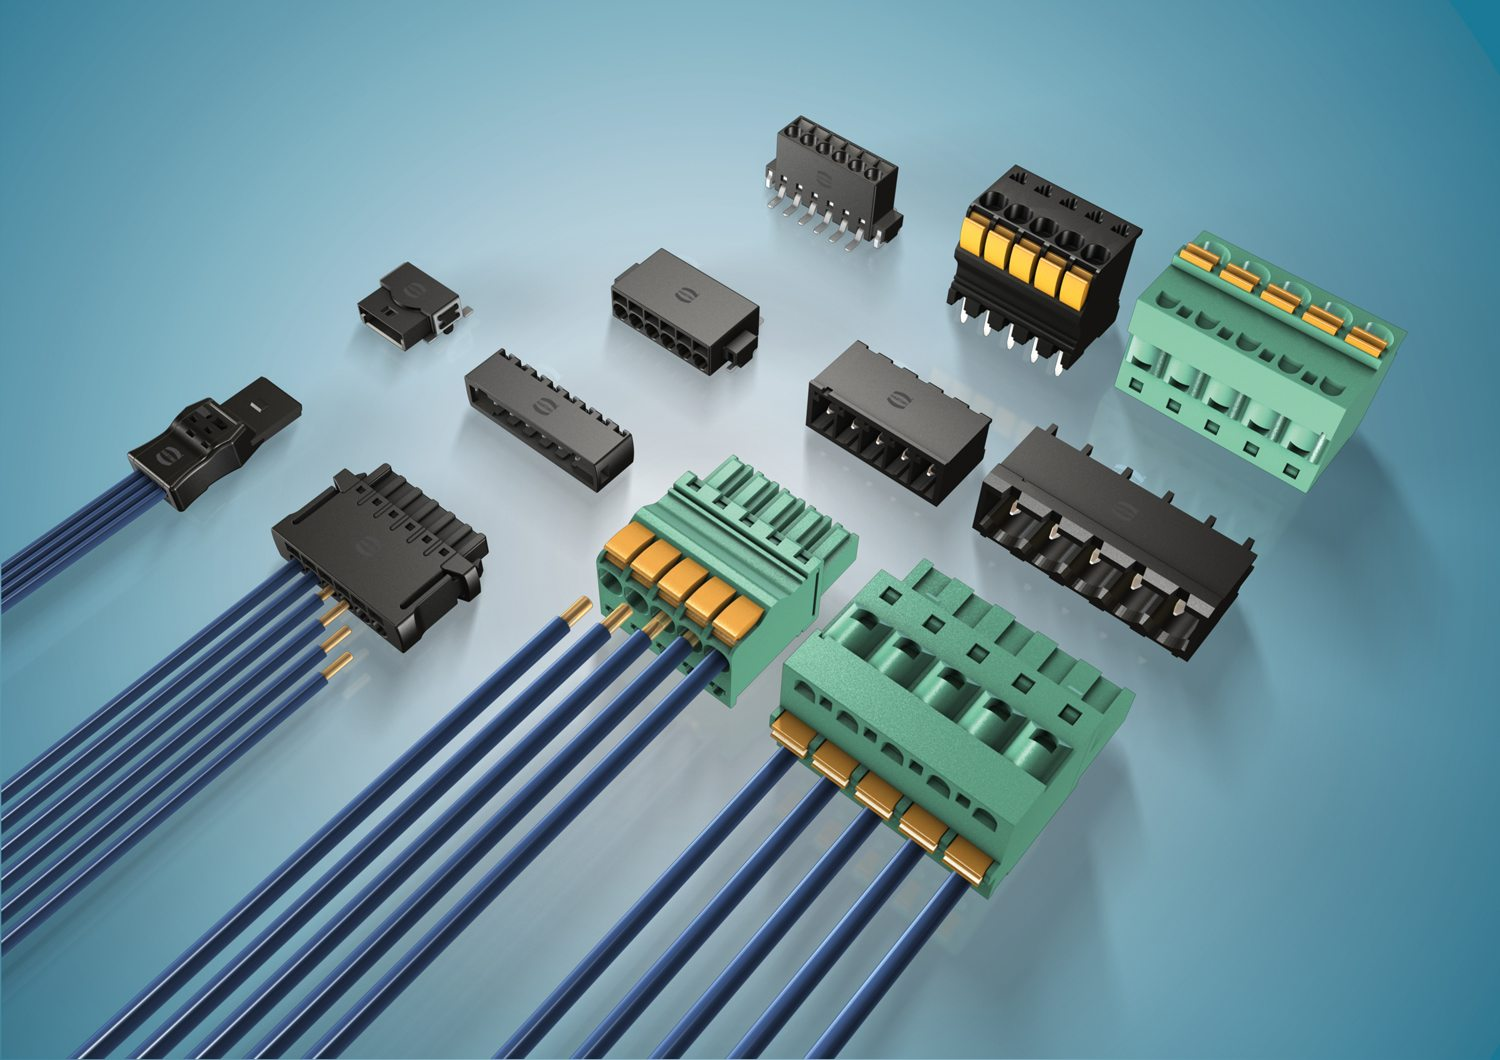 Harting Introduces 2 54 Mm Pitch Version Of Har Flexicon